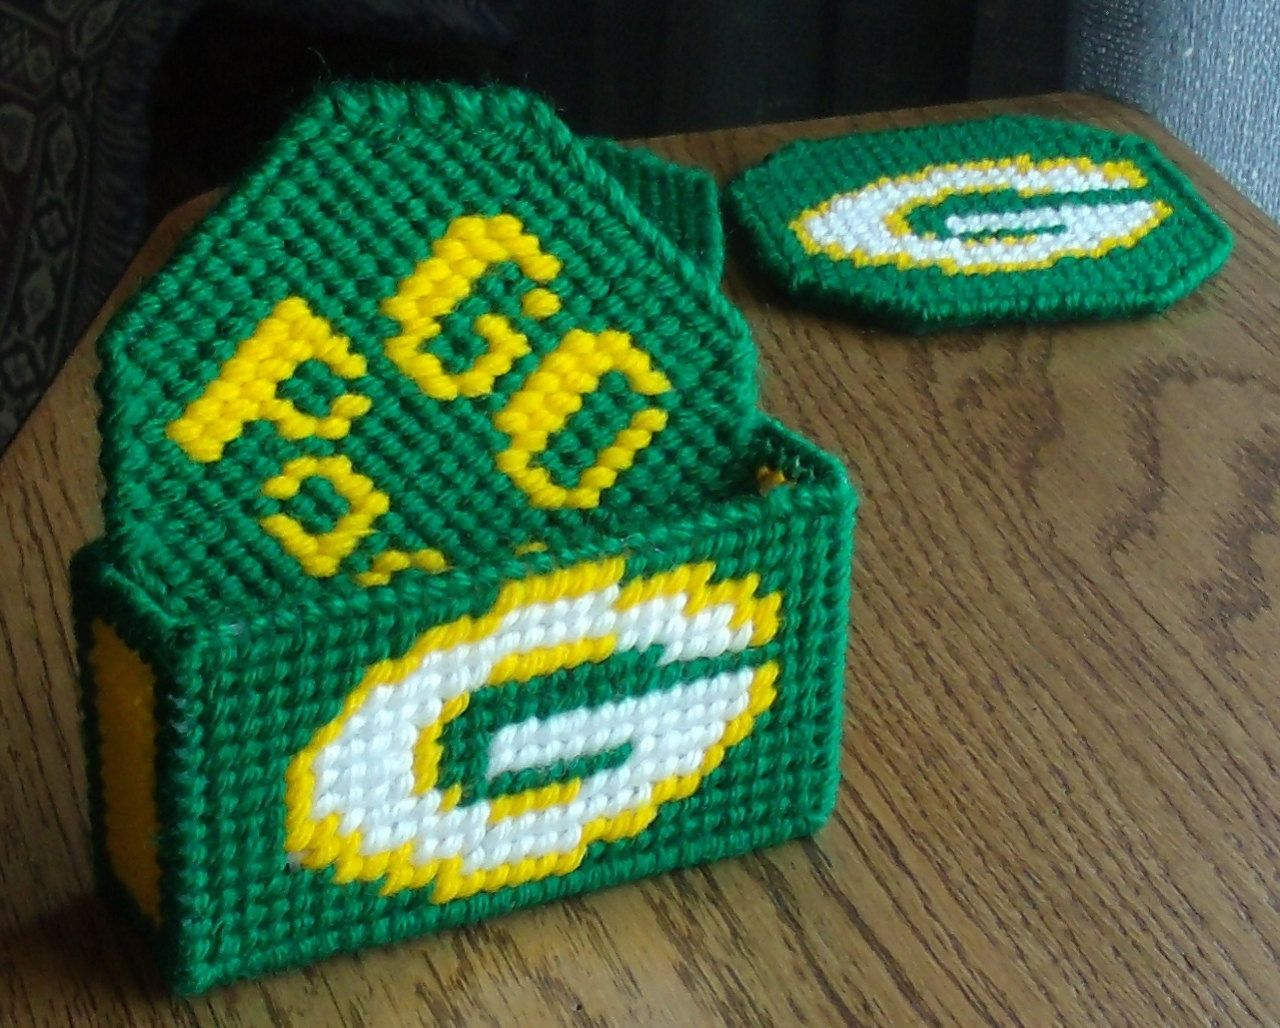 Plastic Canvas Coaster Set 4 With Holder Green Bay Packers By Wisconsinoldandnew On Etsy Plastic Canvas Coasters Plastic Canvas Plastic Canvas Crafts